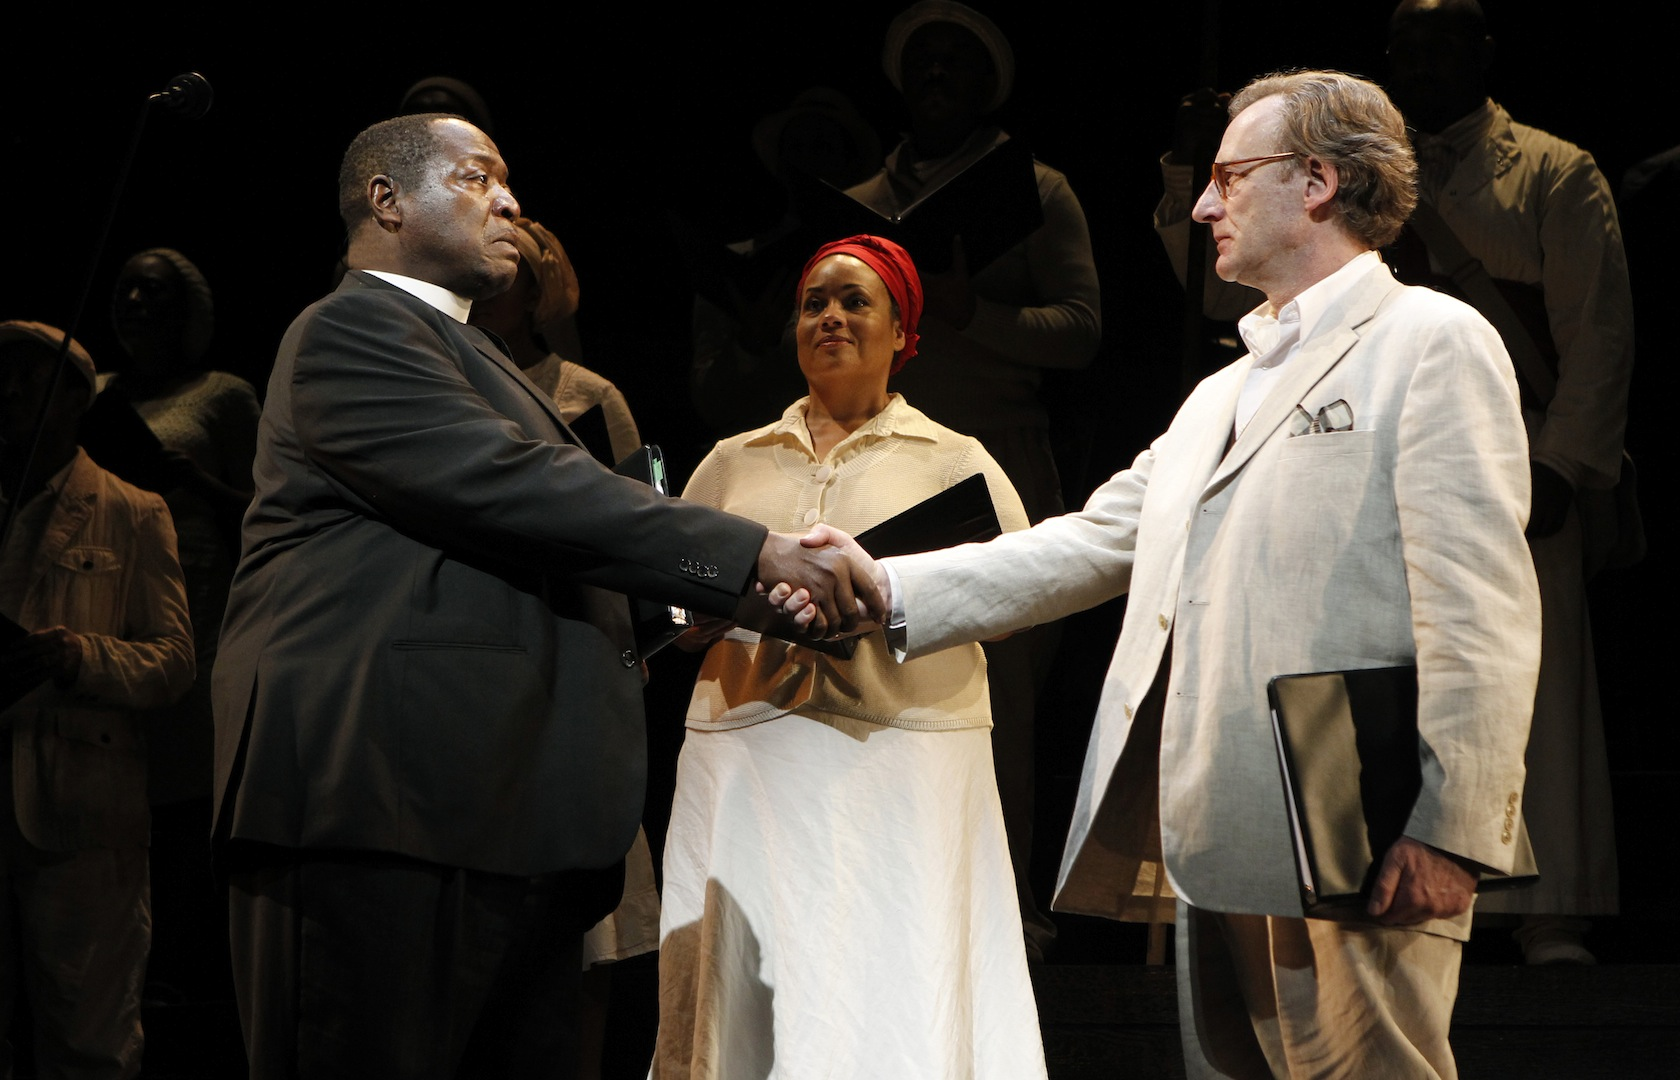 Reconciliation: LOST IN THE STARS at New York City Center Encores!, 2011.